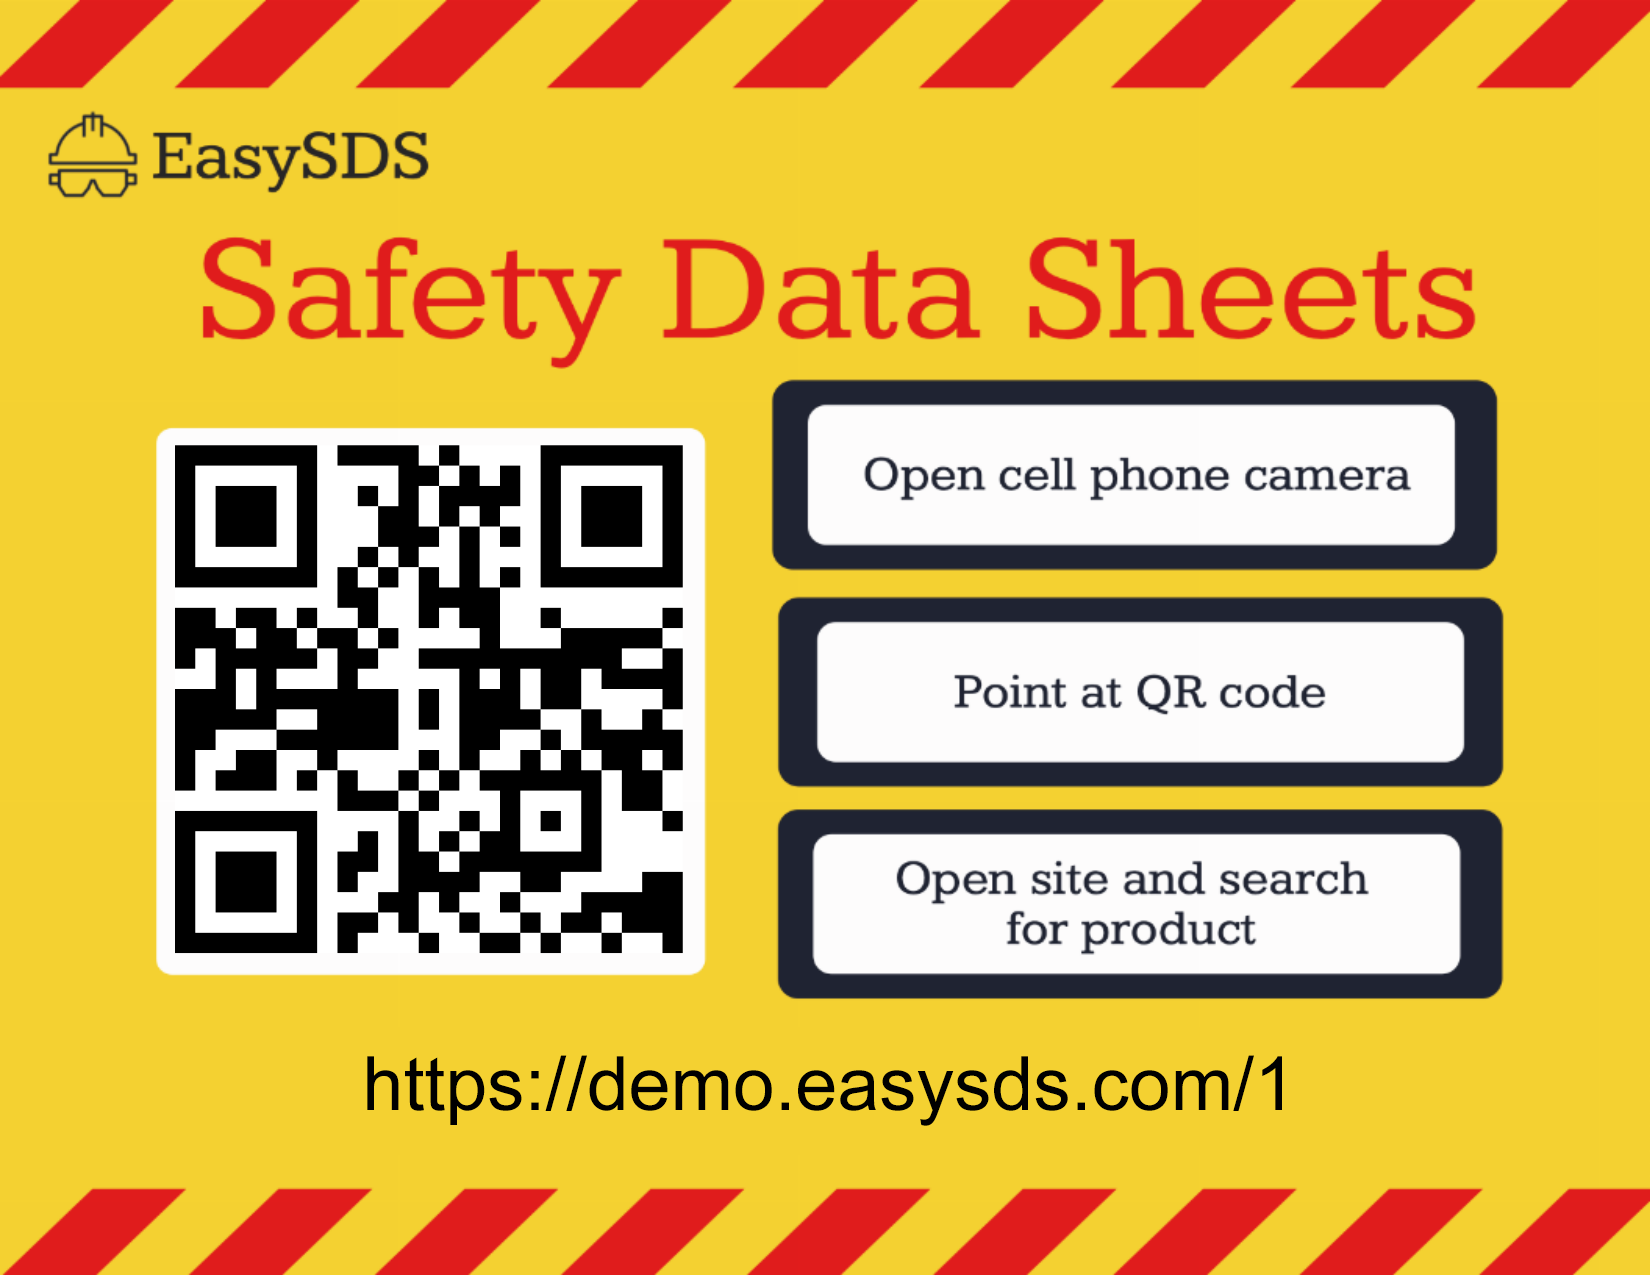 View of a custom sign with a QR code and instructions for accessing your digital safety data sheets using your mobile devices.